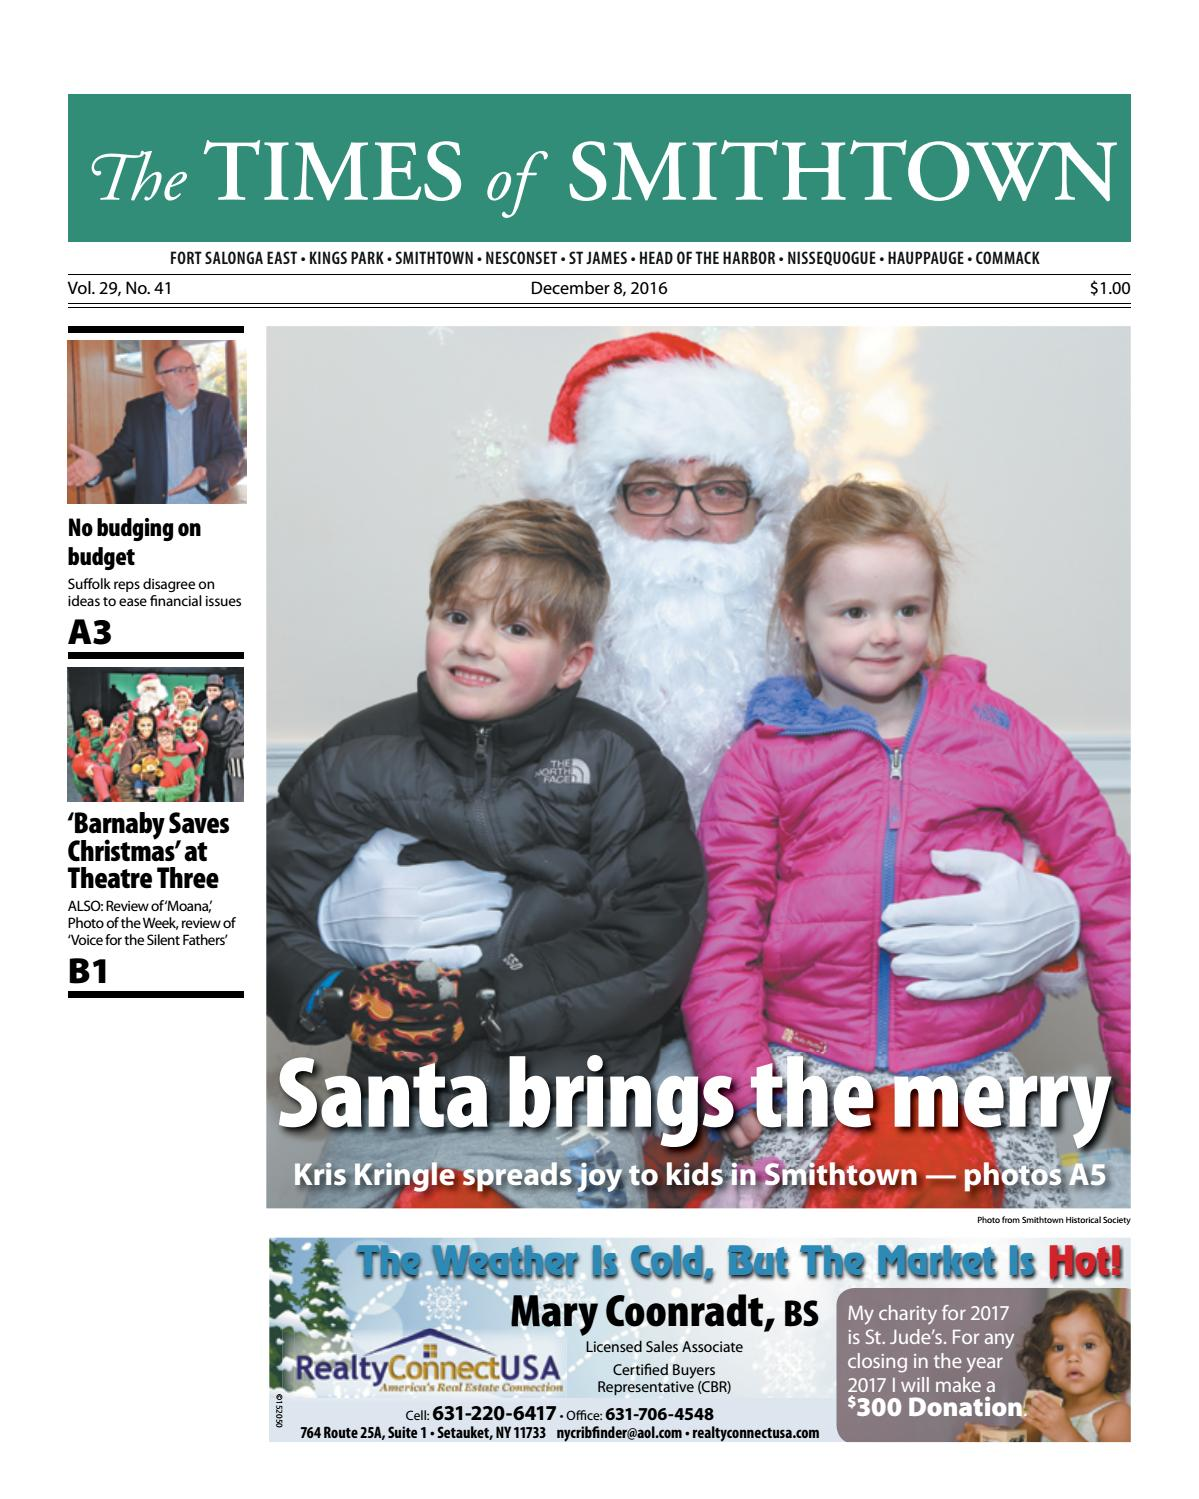 The Times of Smithtown - December 8, 2016 by TBR News Media - issuu